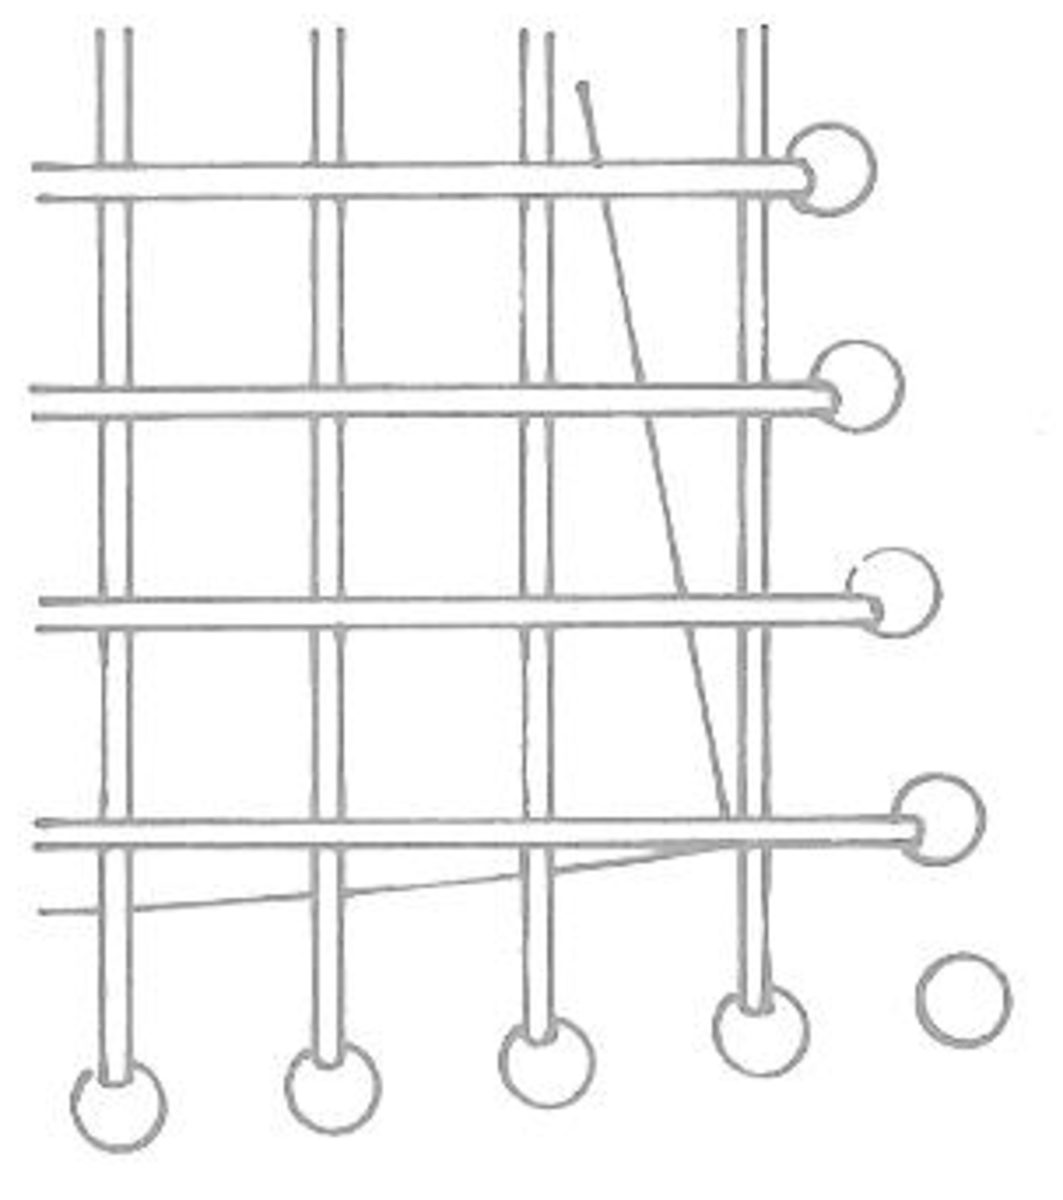 Figure 1: Second Row in Place